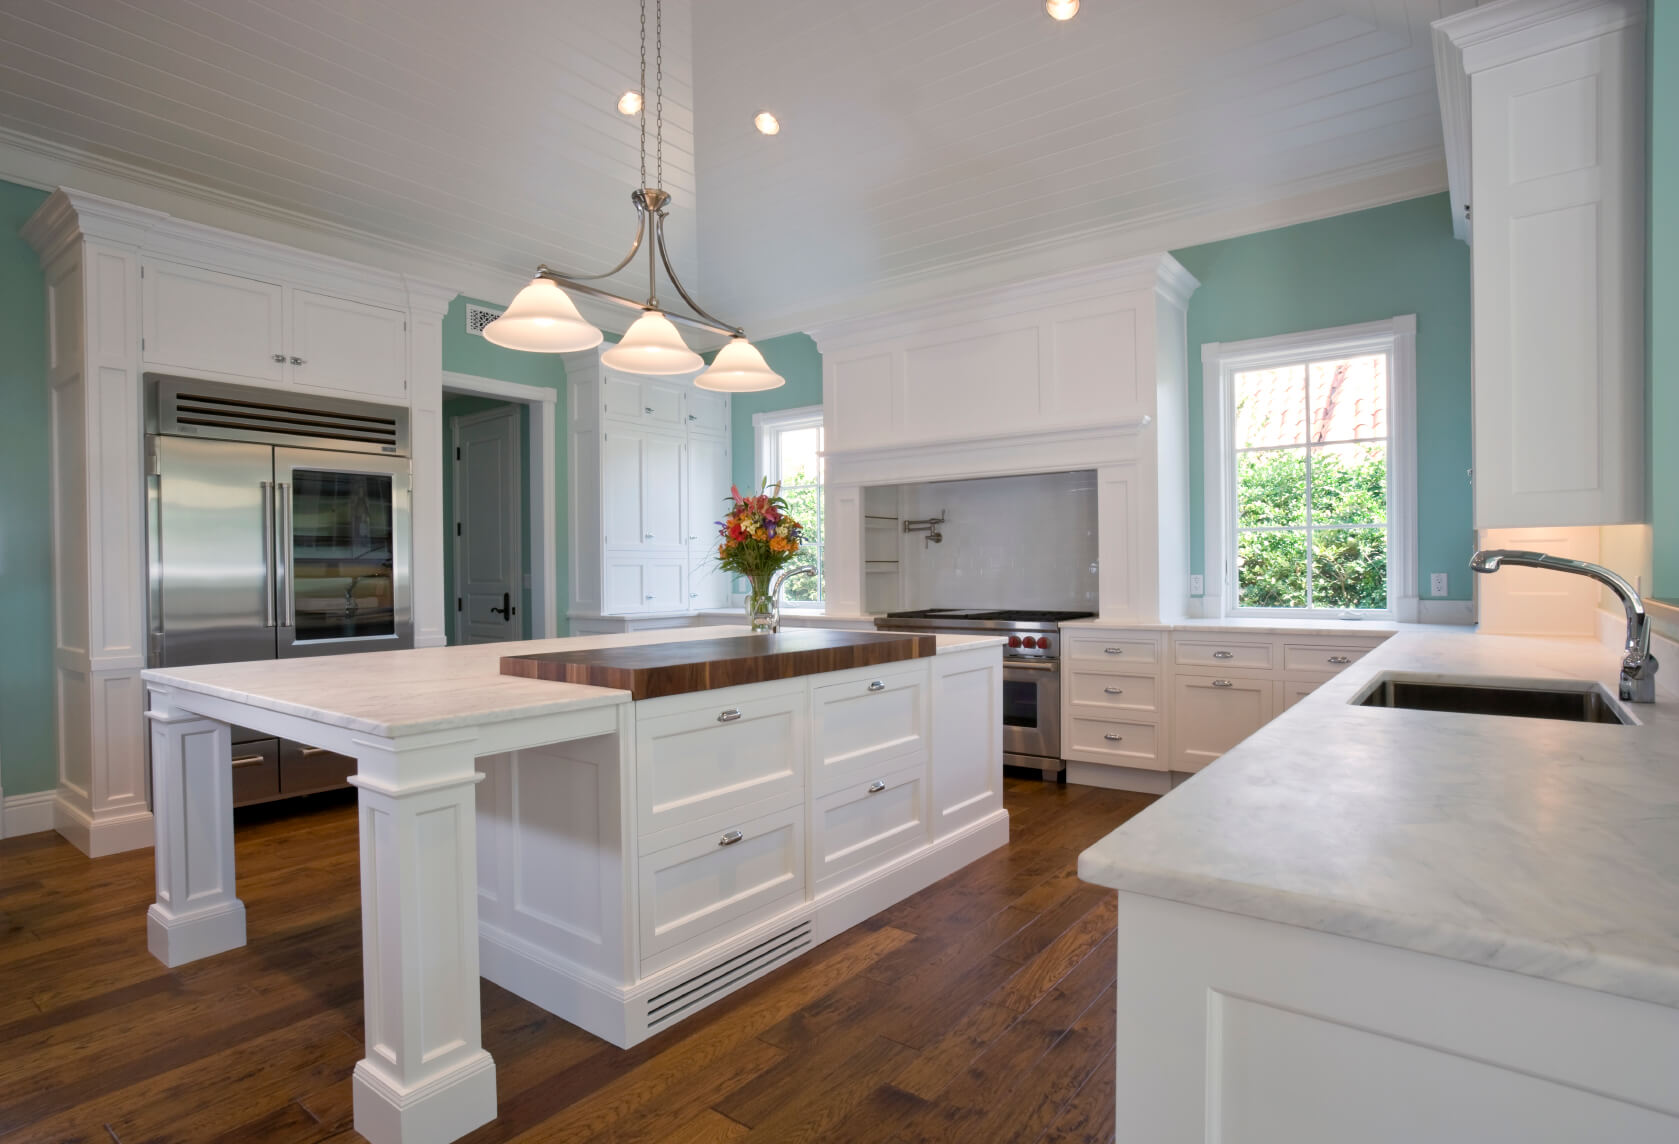 white kitchen designs pictures marble kitchen countertops Light mint blue paint adds burst of color to this all white kitchen over natural